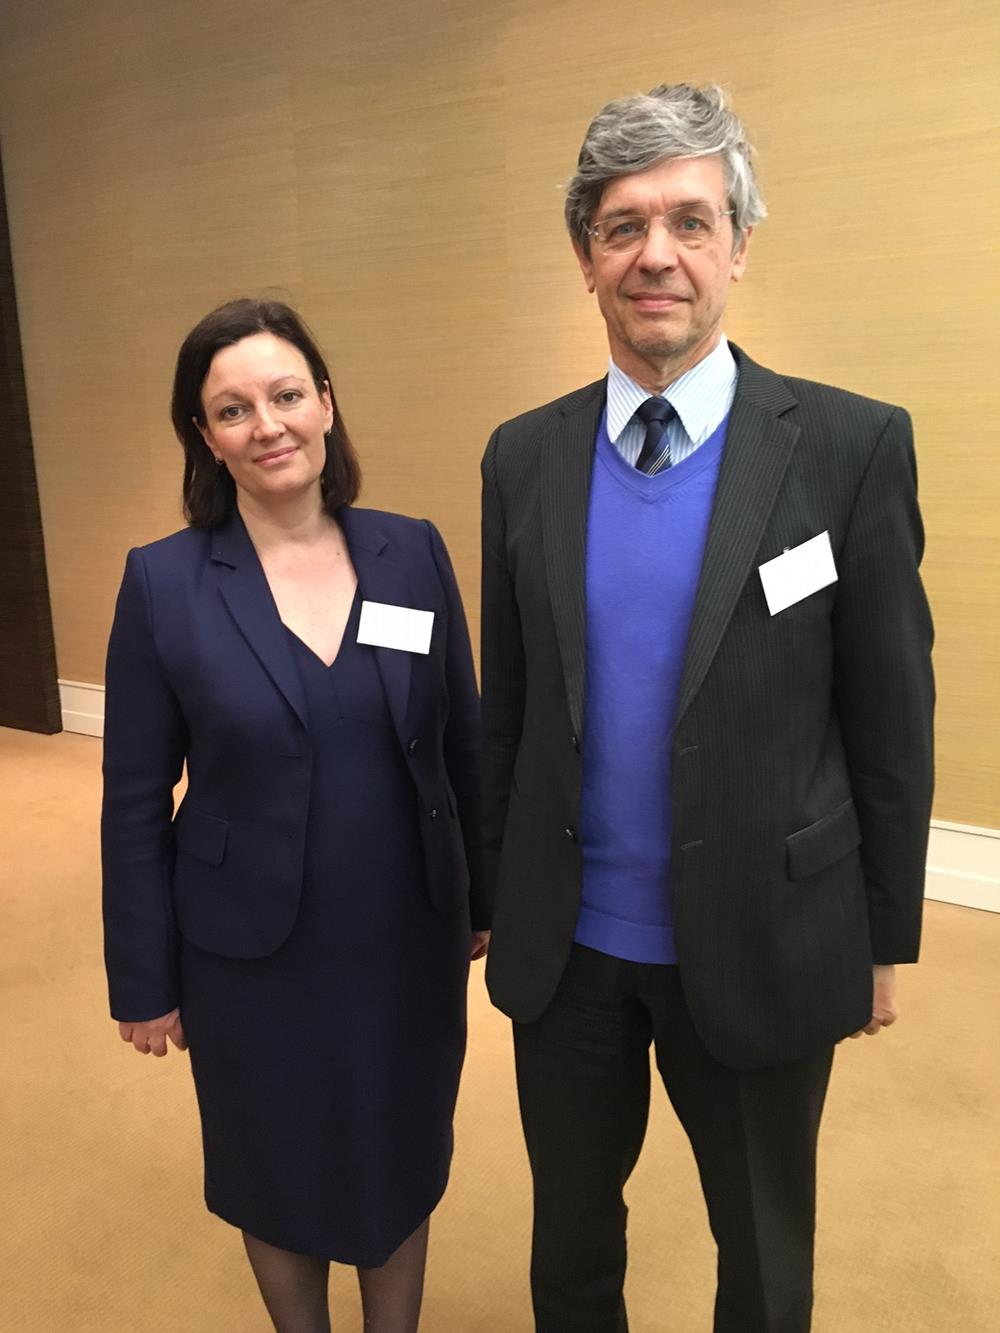 Photo: Melanie Gregory, CEO of The Ear Foundation and Prof Dr Paul Van De Heyning, Chairman of HEARRING group, Key Note Speaker and Host of the MED-EL roundtable respectively.